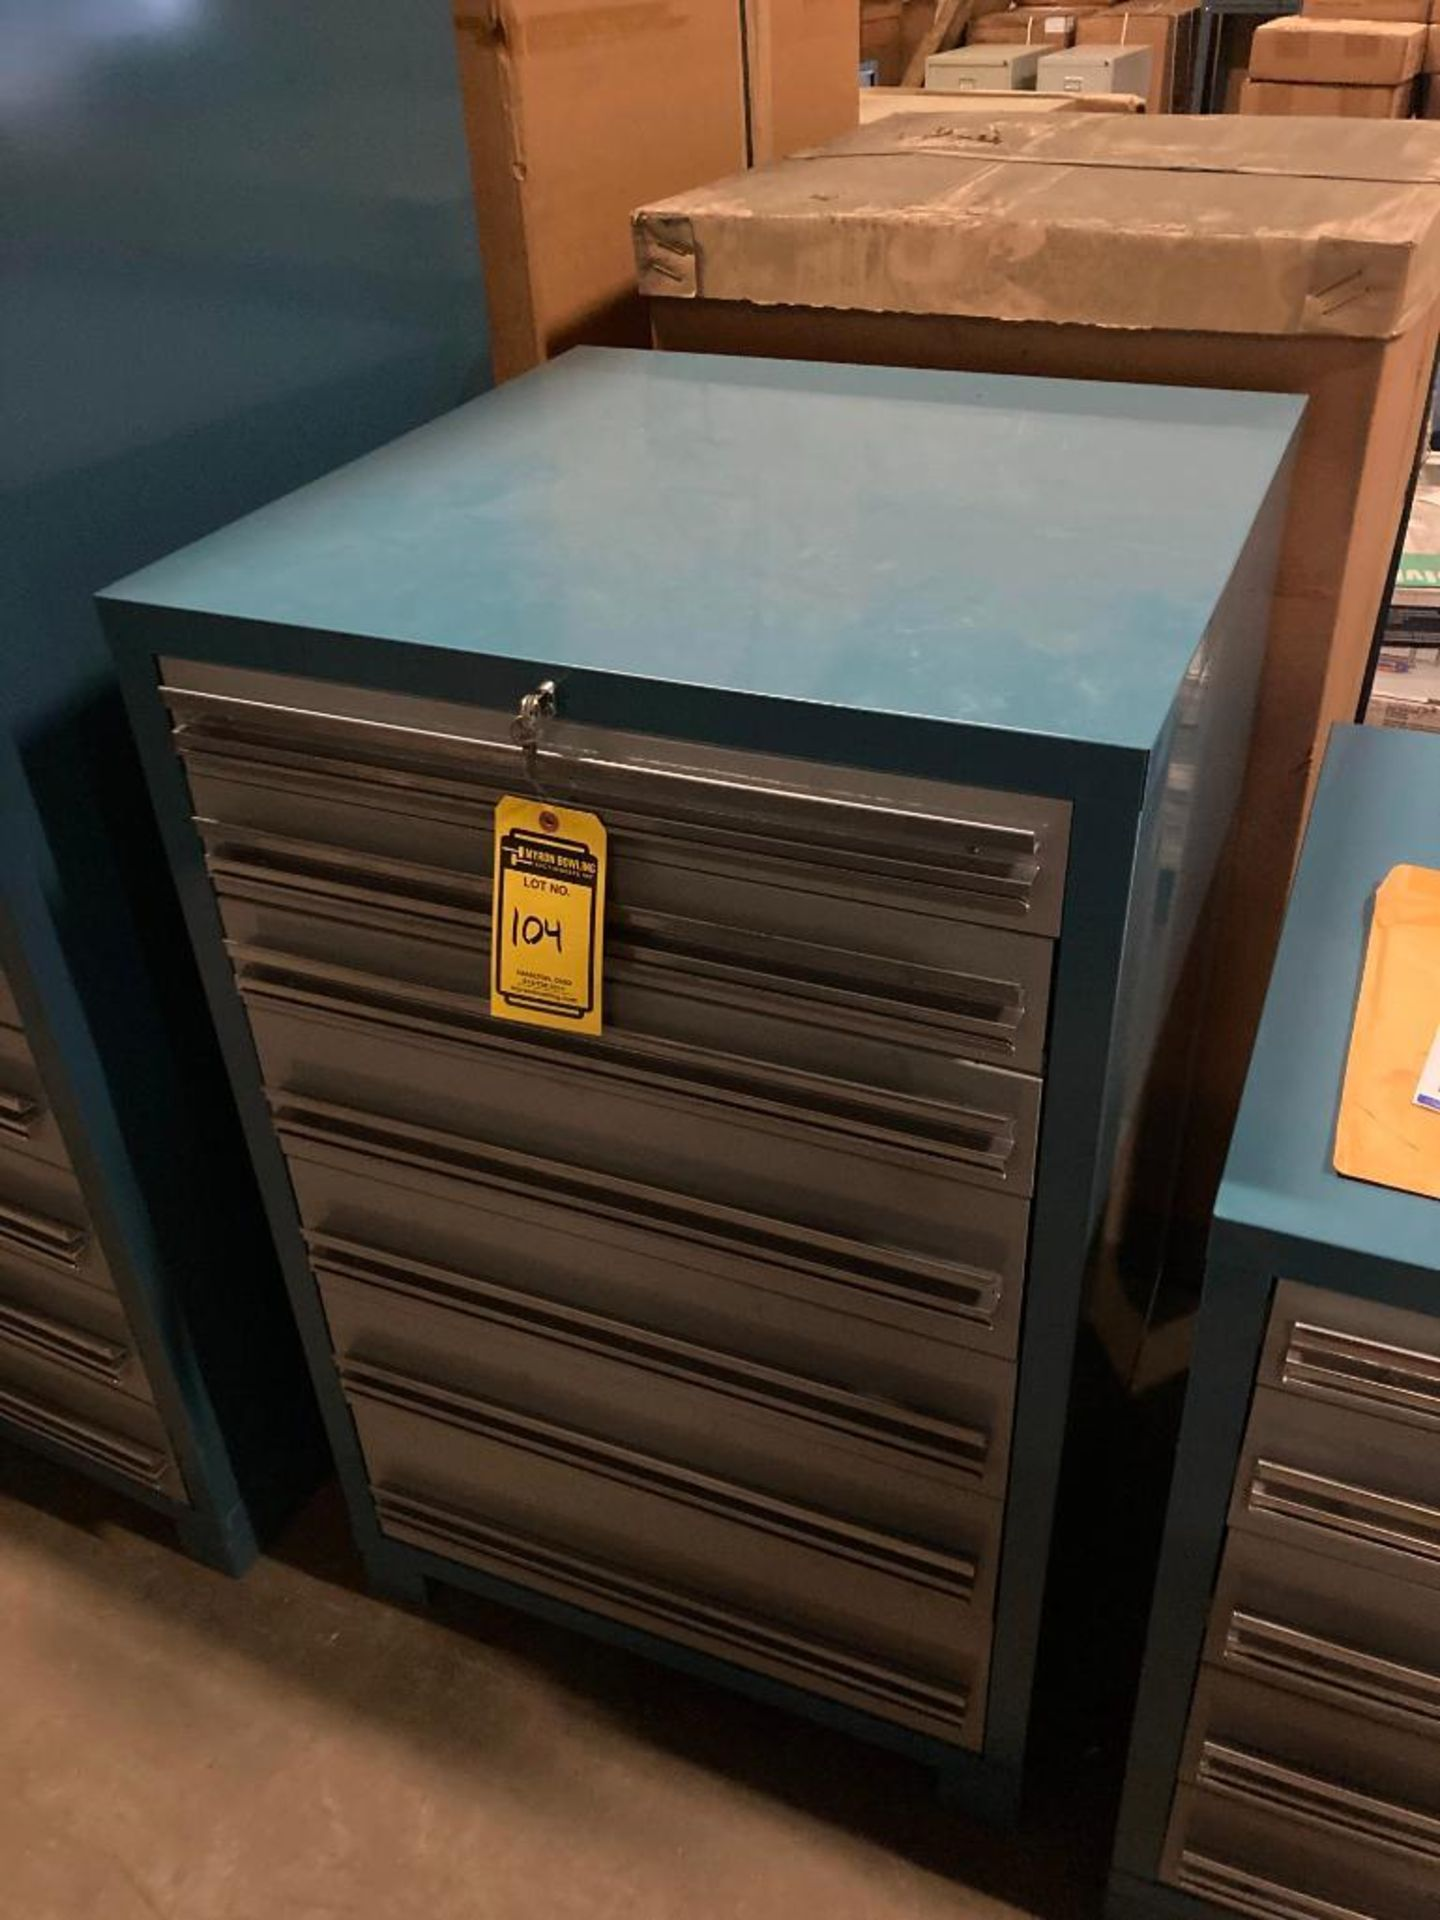 (NEW) EDSEL 7-DRAWER HEAVY DUTY MODULAR TOOLING CABINET; 28.25''W X 44.5''H X 28.25''D; MODEL MDC-7 - Image 2 of 2